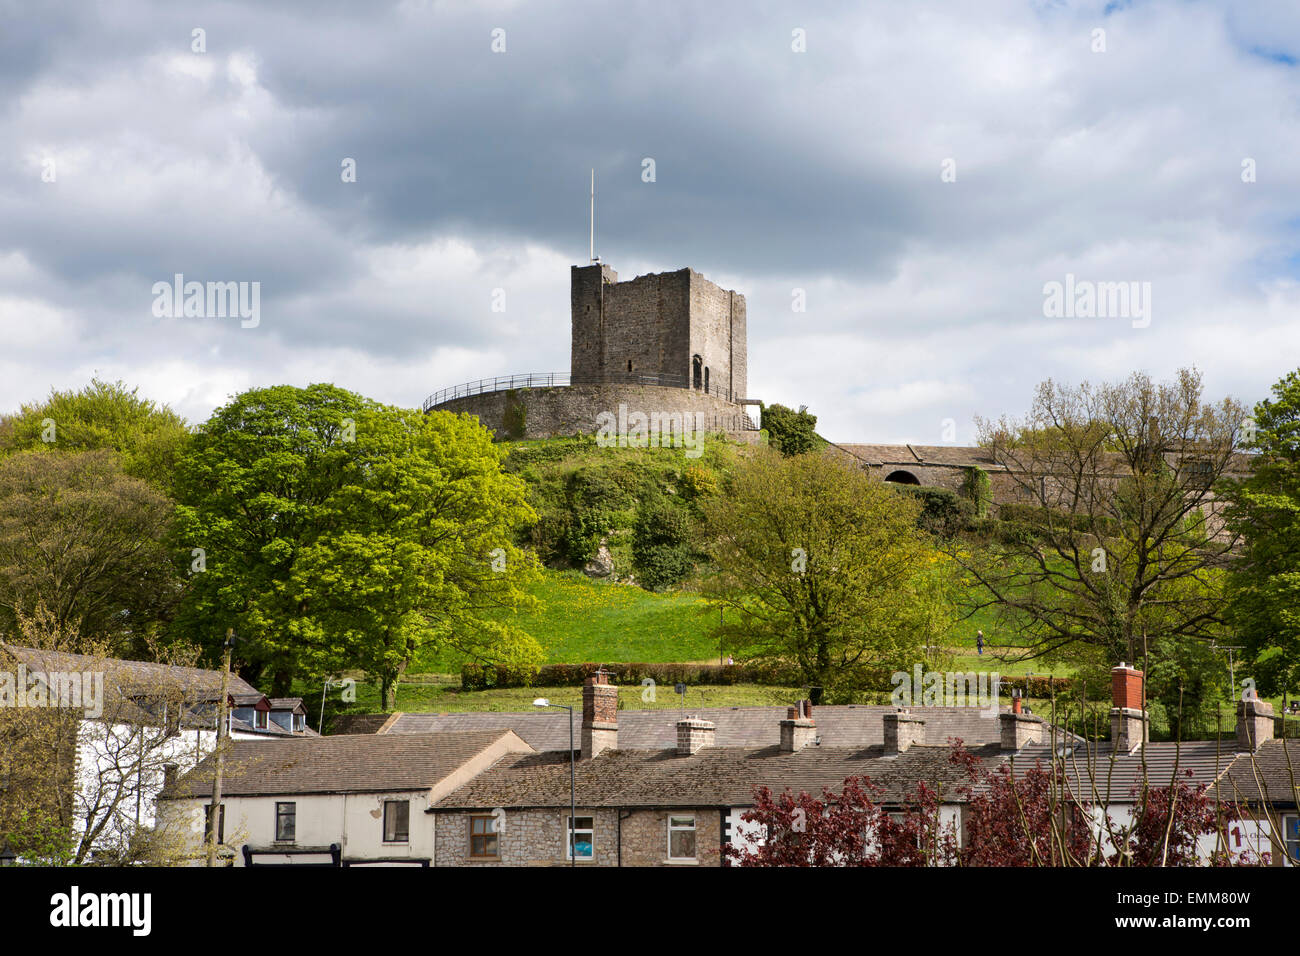 UK, England, Lancashire, Ribble Valley, Clitheroe castle keep above the town - Stock Image